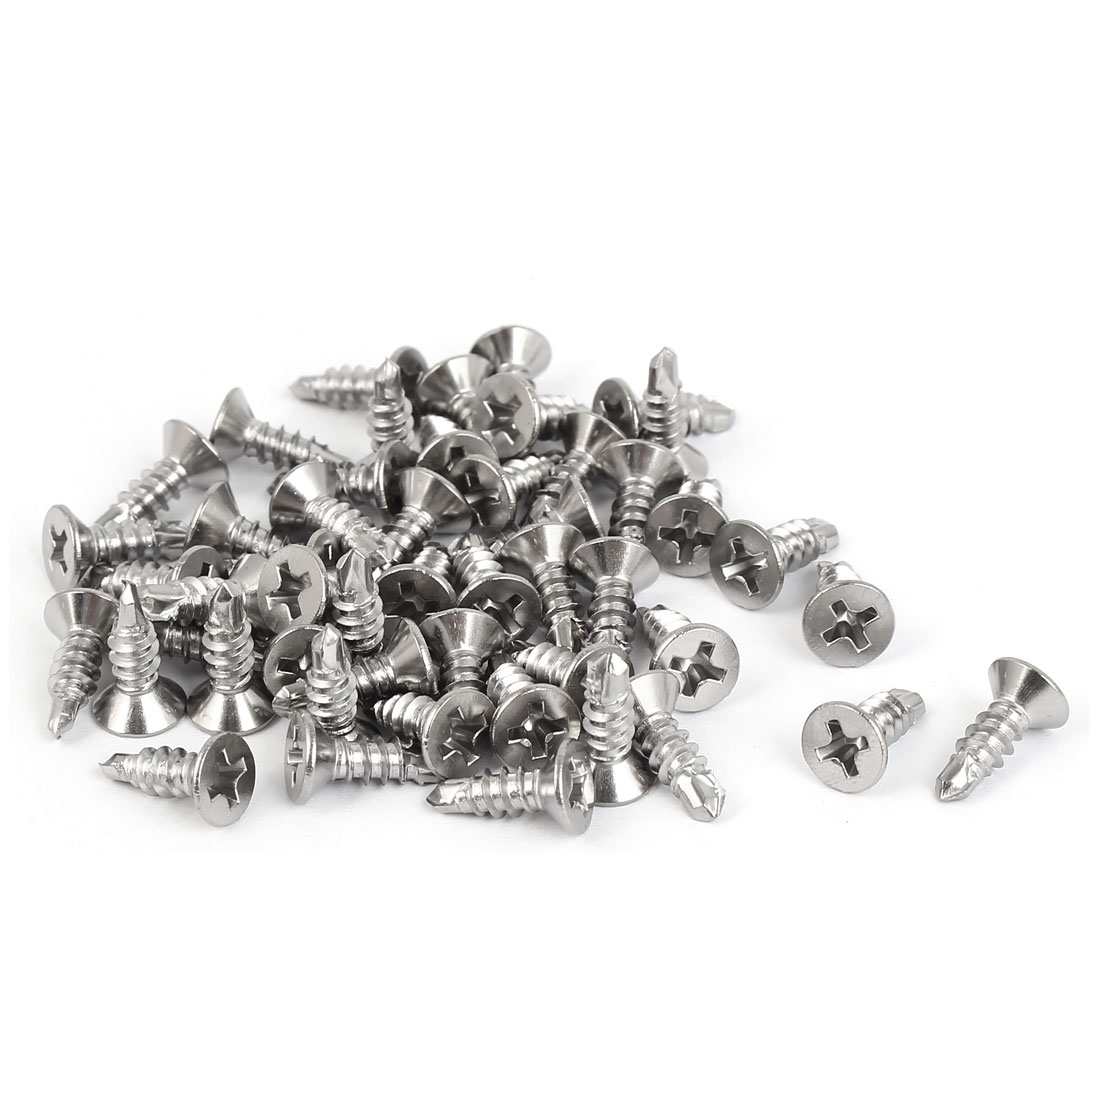 M3.9x13mm #7 Thread 410 Stainless Steel Self Drilling Countersunk Head Screws 50 Pcs